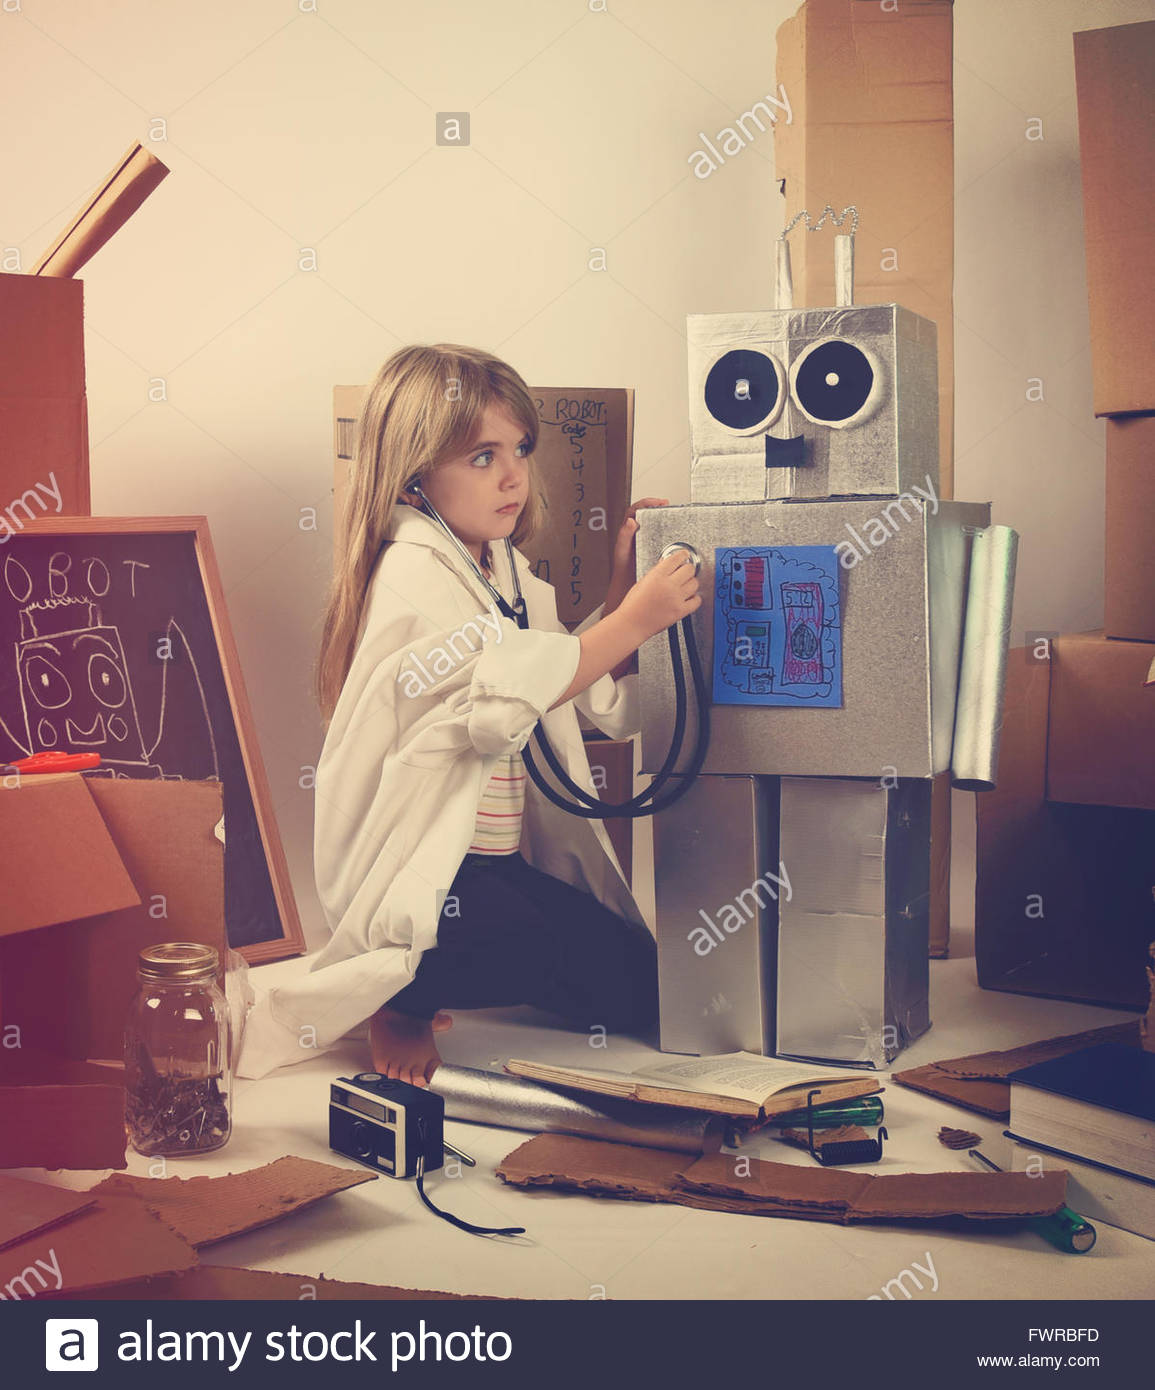 A child science student is inventing a metal robot out of cardboard boxes with tools. The girl is wearing a lab - Stock Image